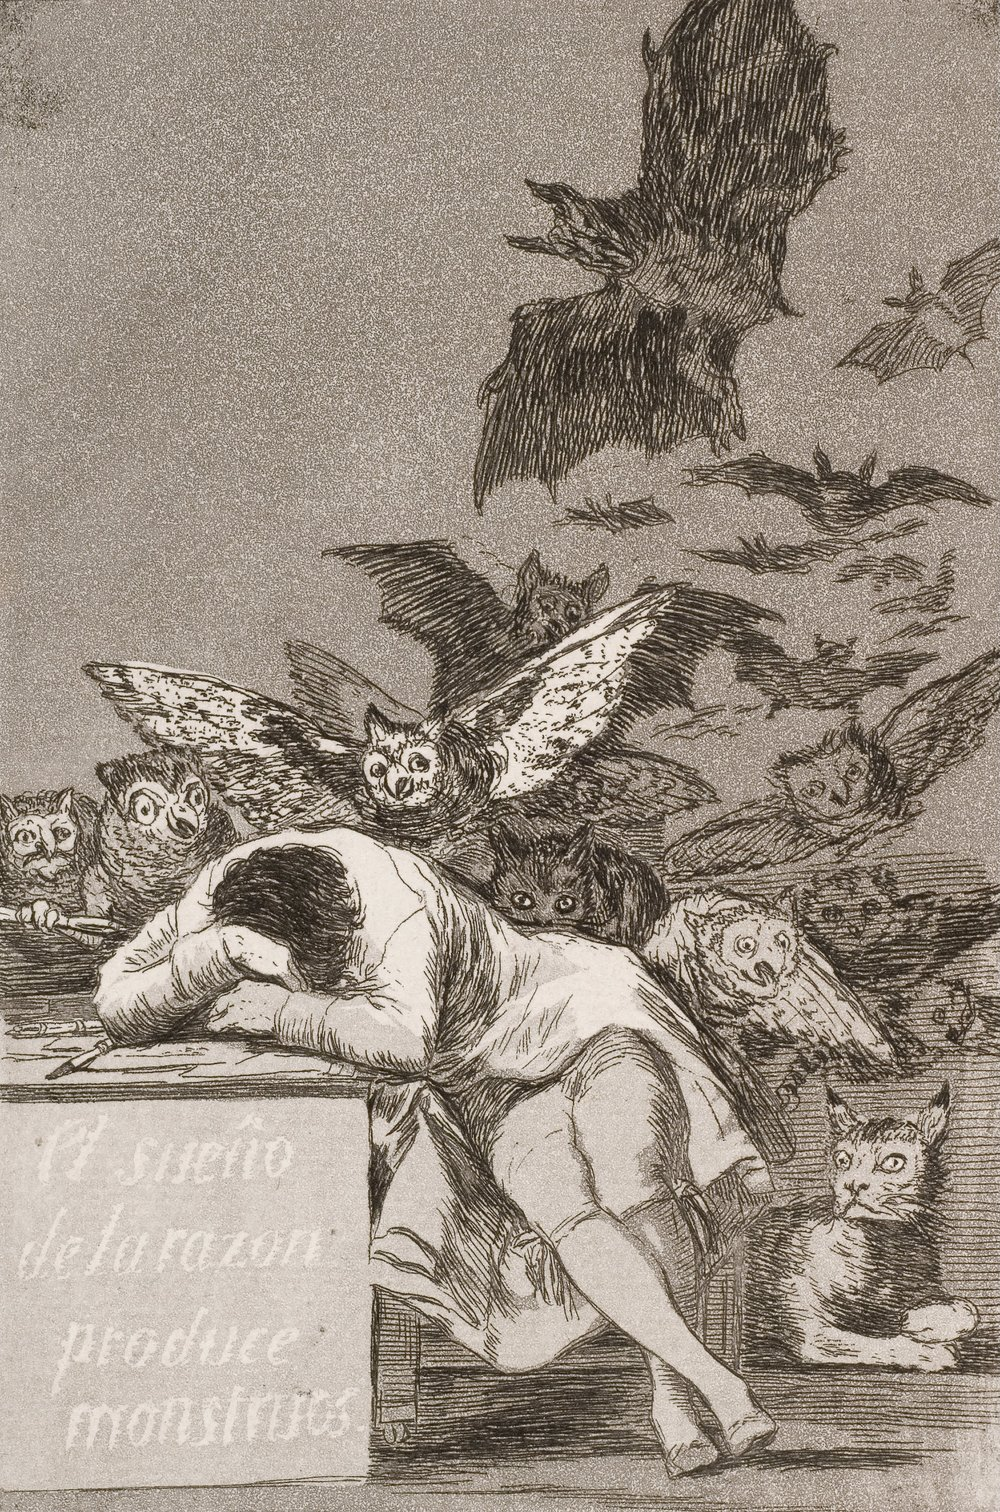 Francisco de Goya (c. 1797) The Sleep of Reason Produces Monsters (El sueño de la razón produce monstruos) Plate 43 of the 80 in the Los Caprichos series. Etching aquatint, drypoint and burin.